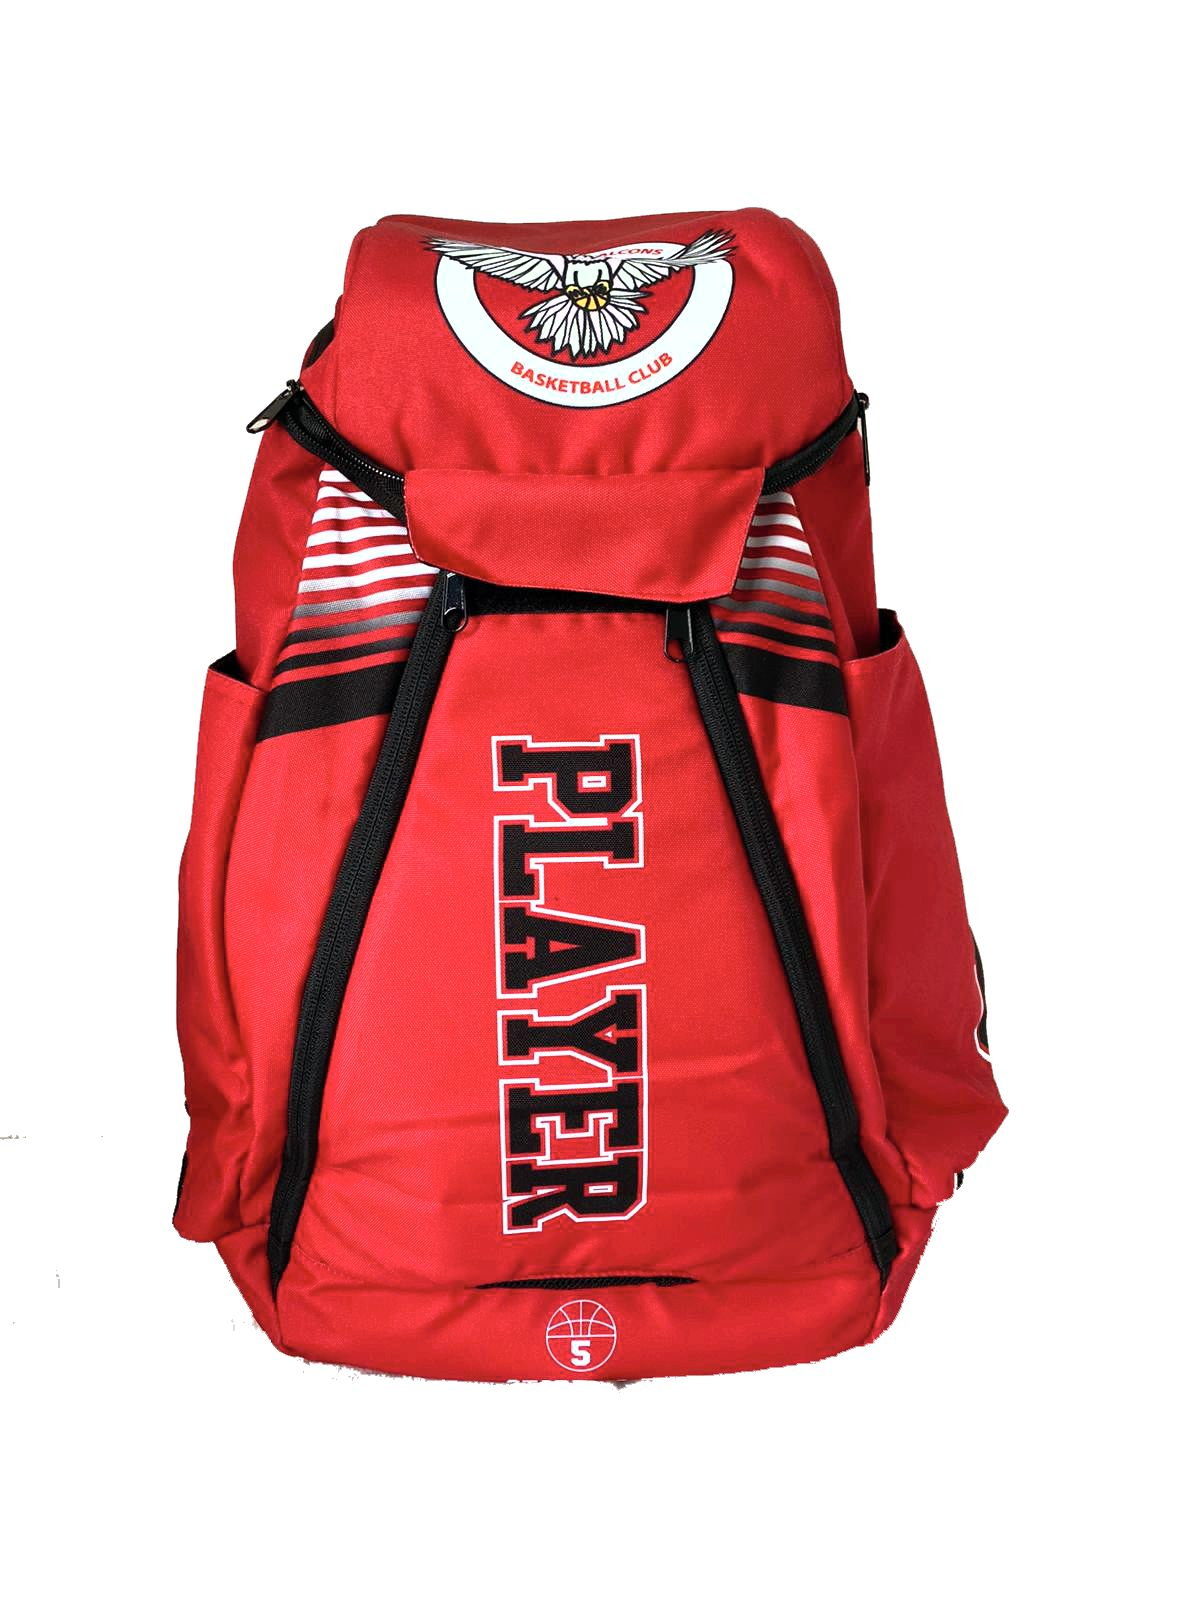 Frankley Falcons Backpack